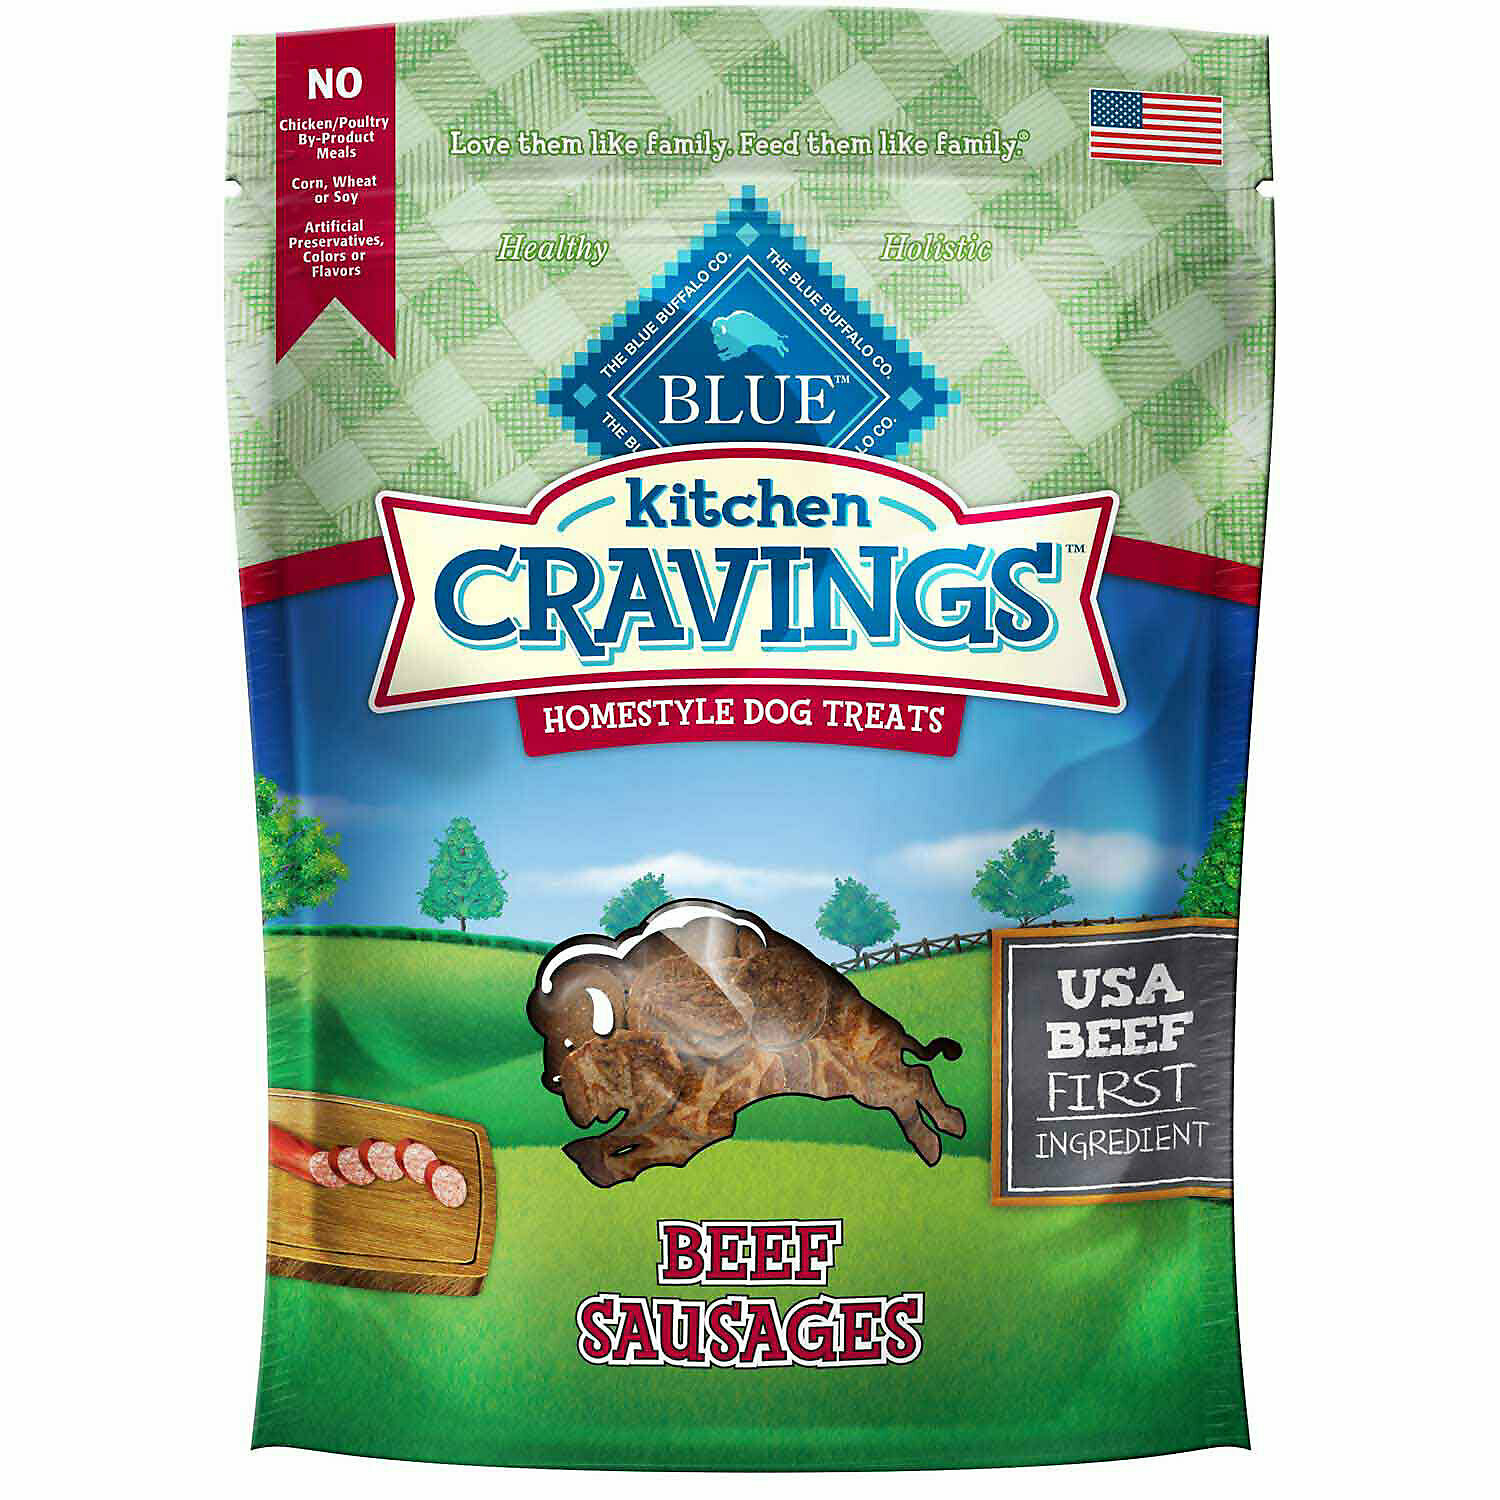 Blue Buffalo kitchen cravings homestyle dog treat beef sausages 6 ounces (5/19)